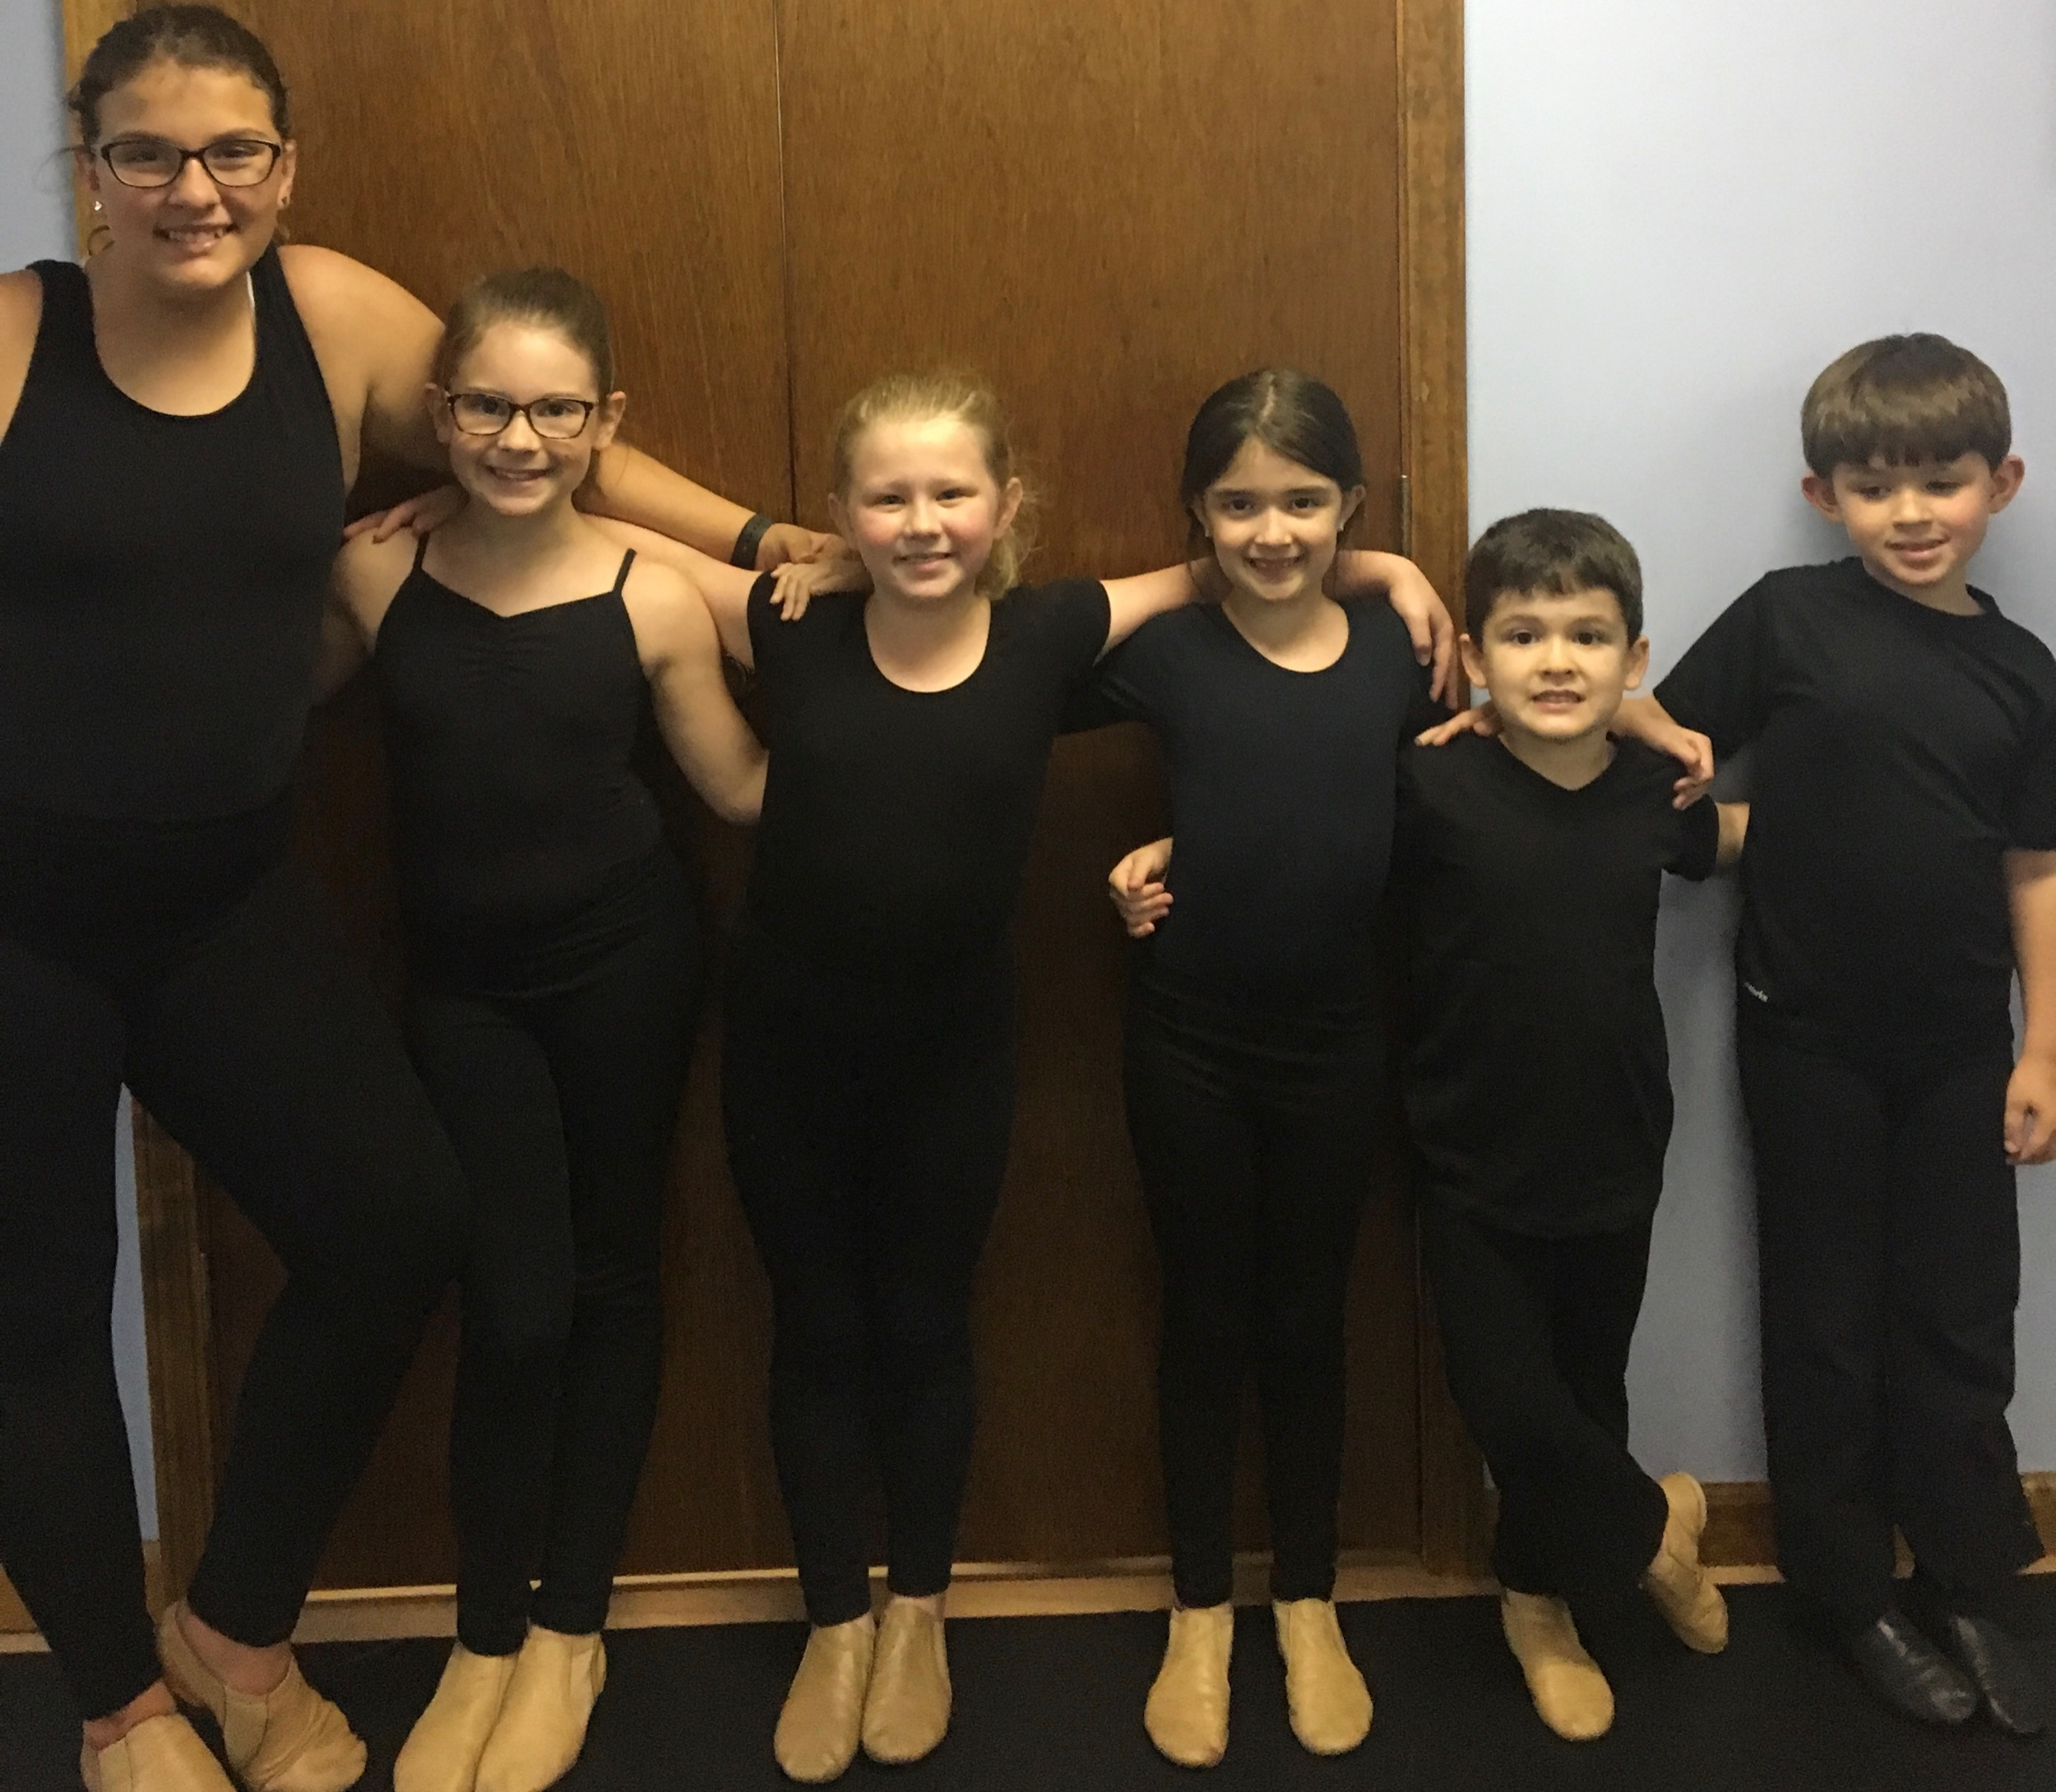 STUDENTS IN THEIR BASE ITEMS NEEDED FOR PERFORMANCE